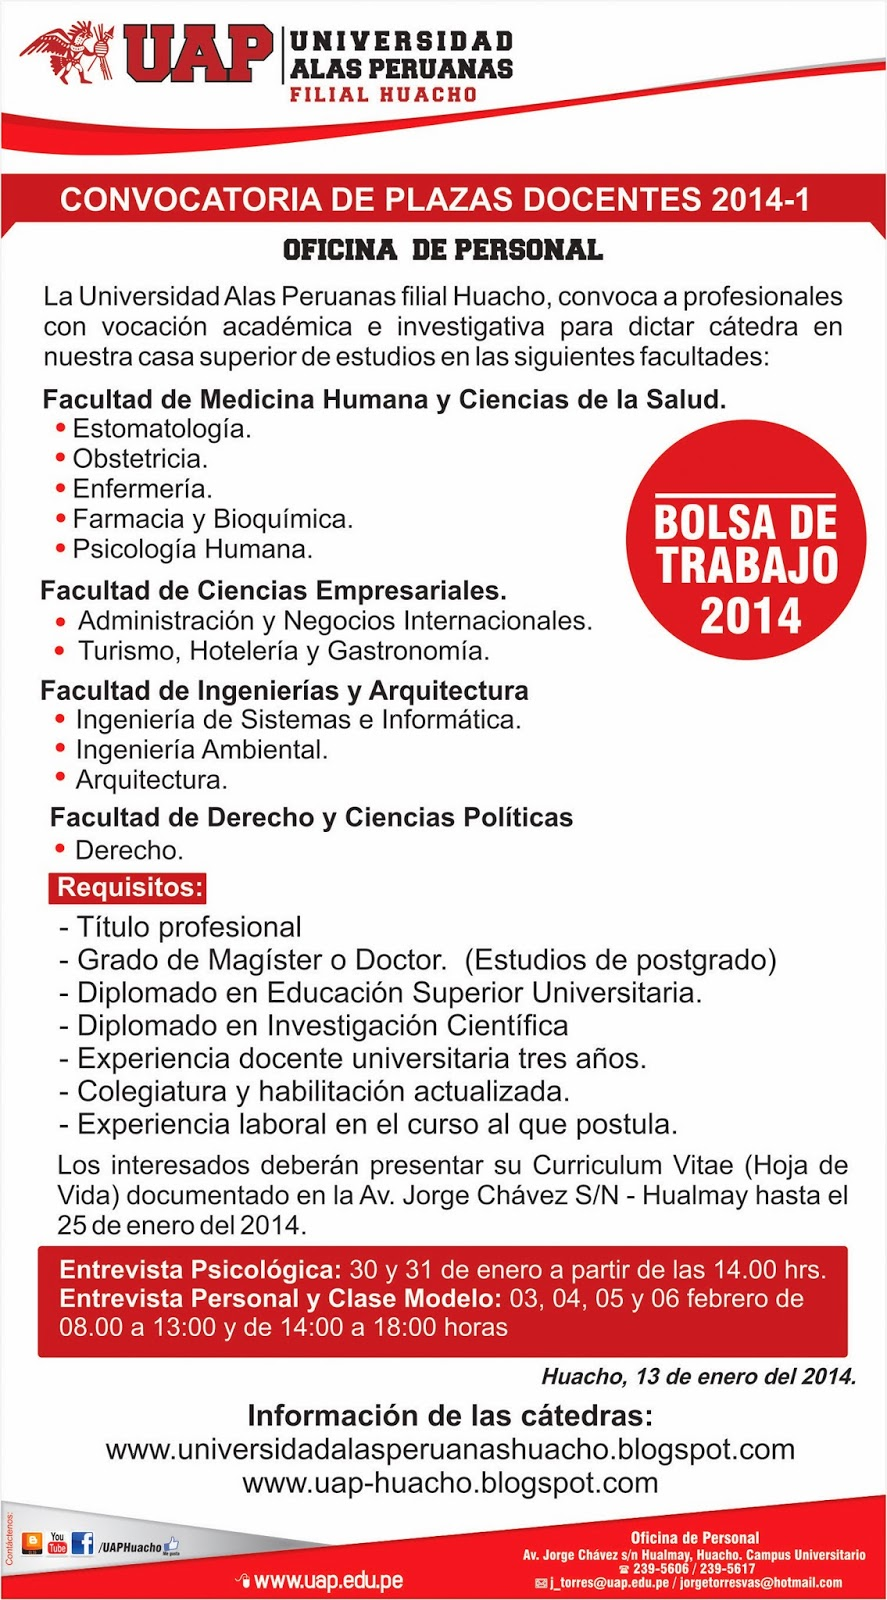 Universidad alas peruanas filial huacho convocatoria de for Convocatoria plazas docentes